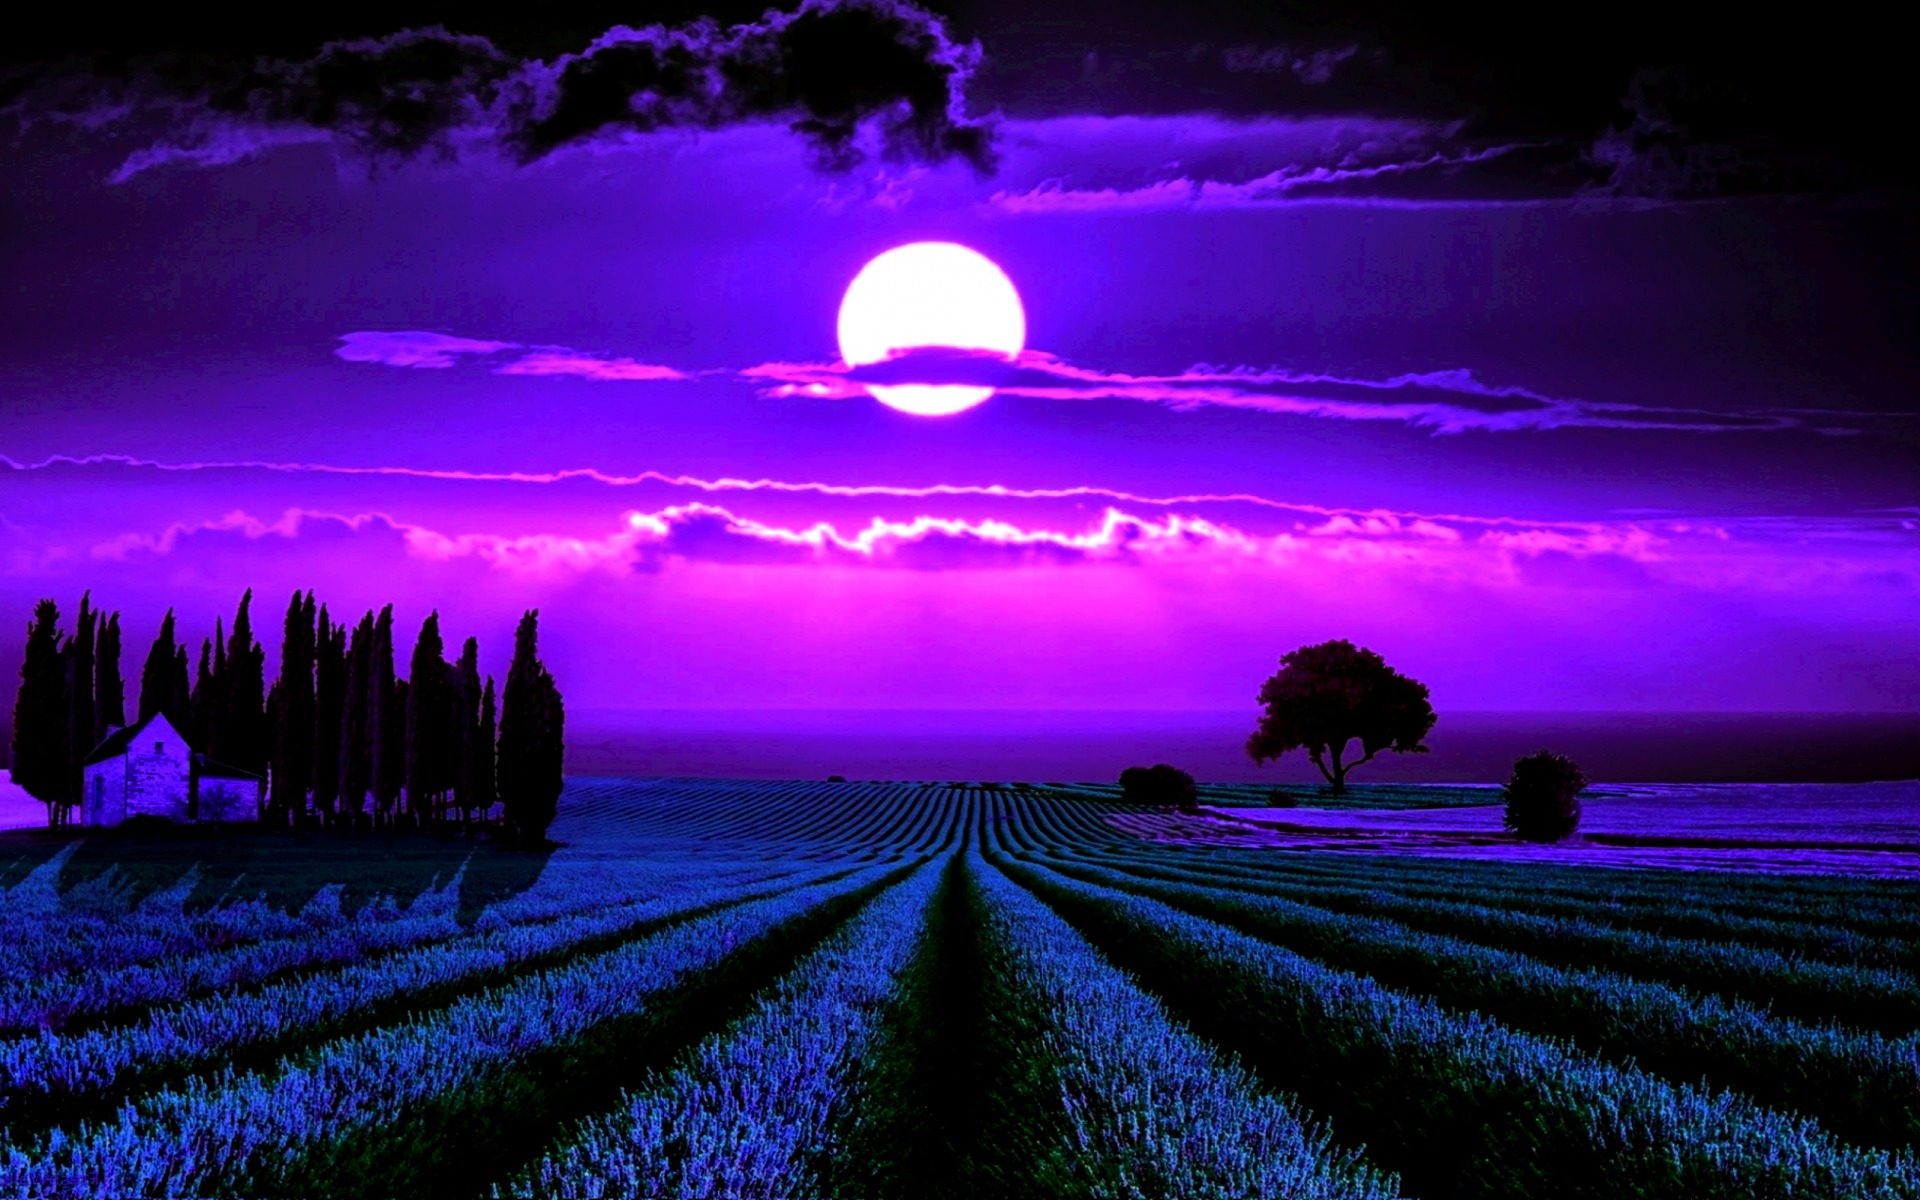 Image Moonlight Lavender Wallpapers And Stock Photos